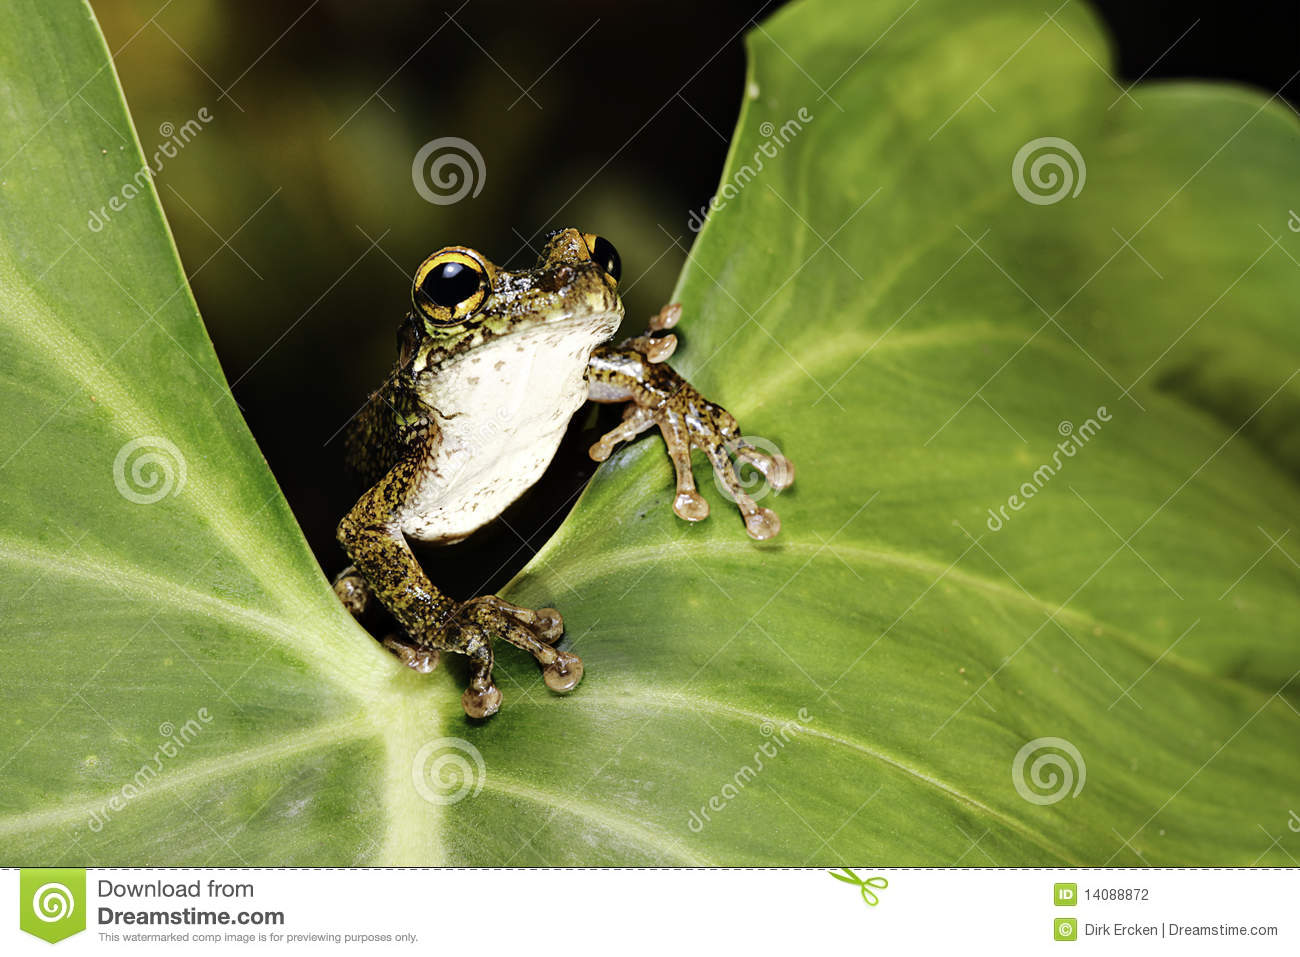 Tree frog on green leaf in tropical rainforest